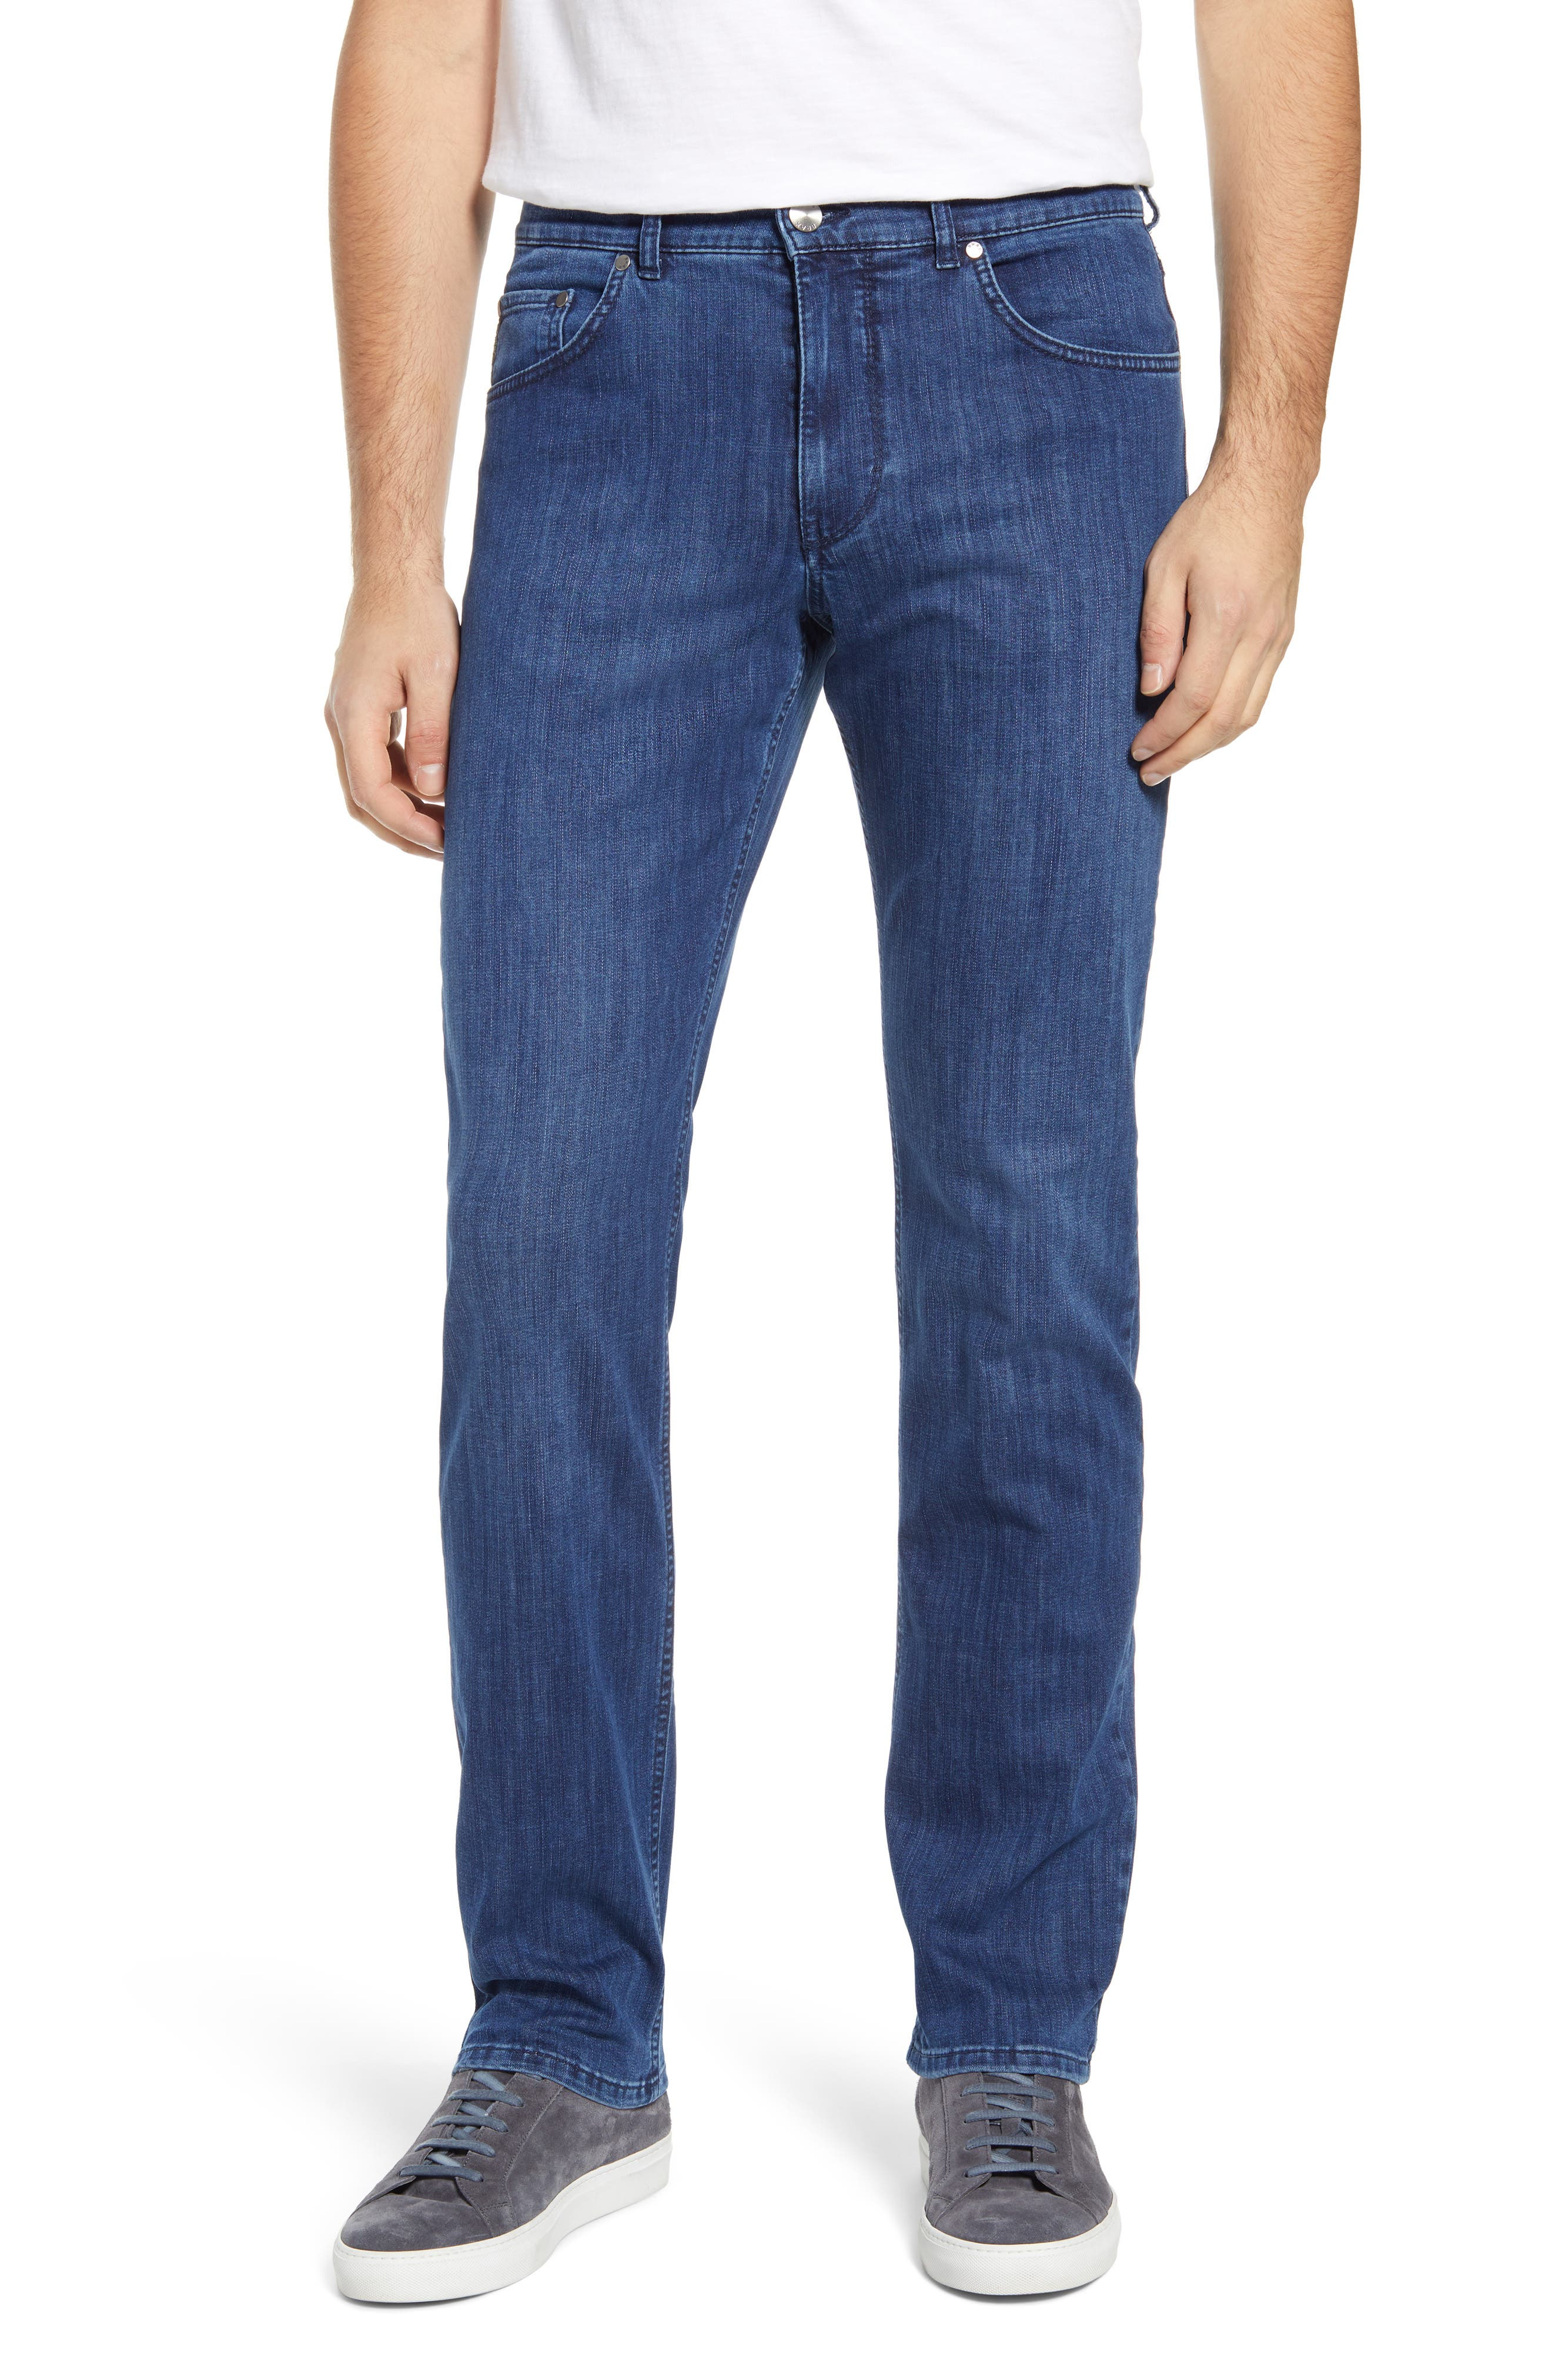 Look sharp and feel good inside and out in these straight-leg jeans elevated by soft, luxurious stretch-denim blended with sustainable fibers. Style Name: Brax Cooper Pure Straight Leg Jeans (Regular Blue Used). Style Number: 6028136. Available in stores.